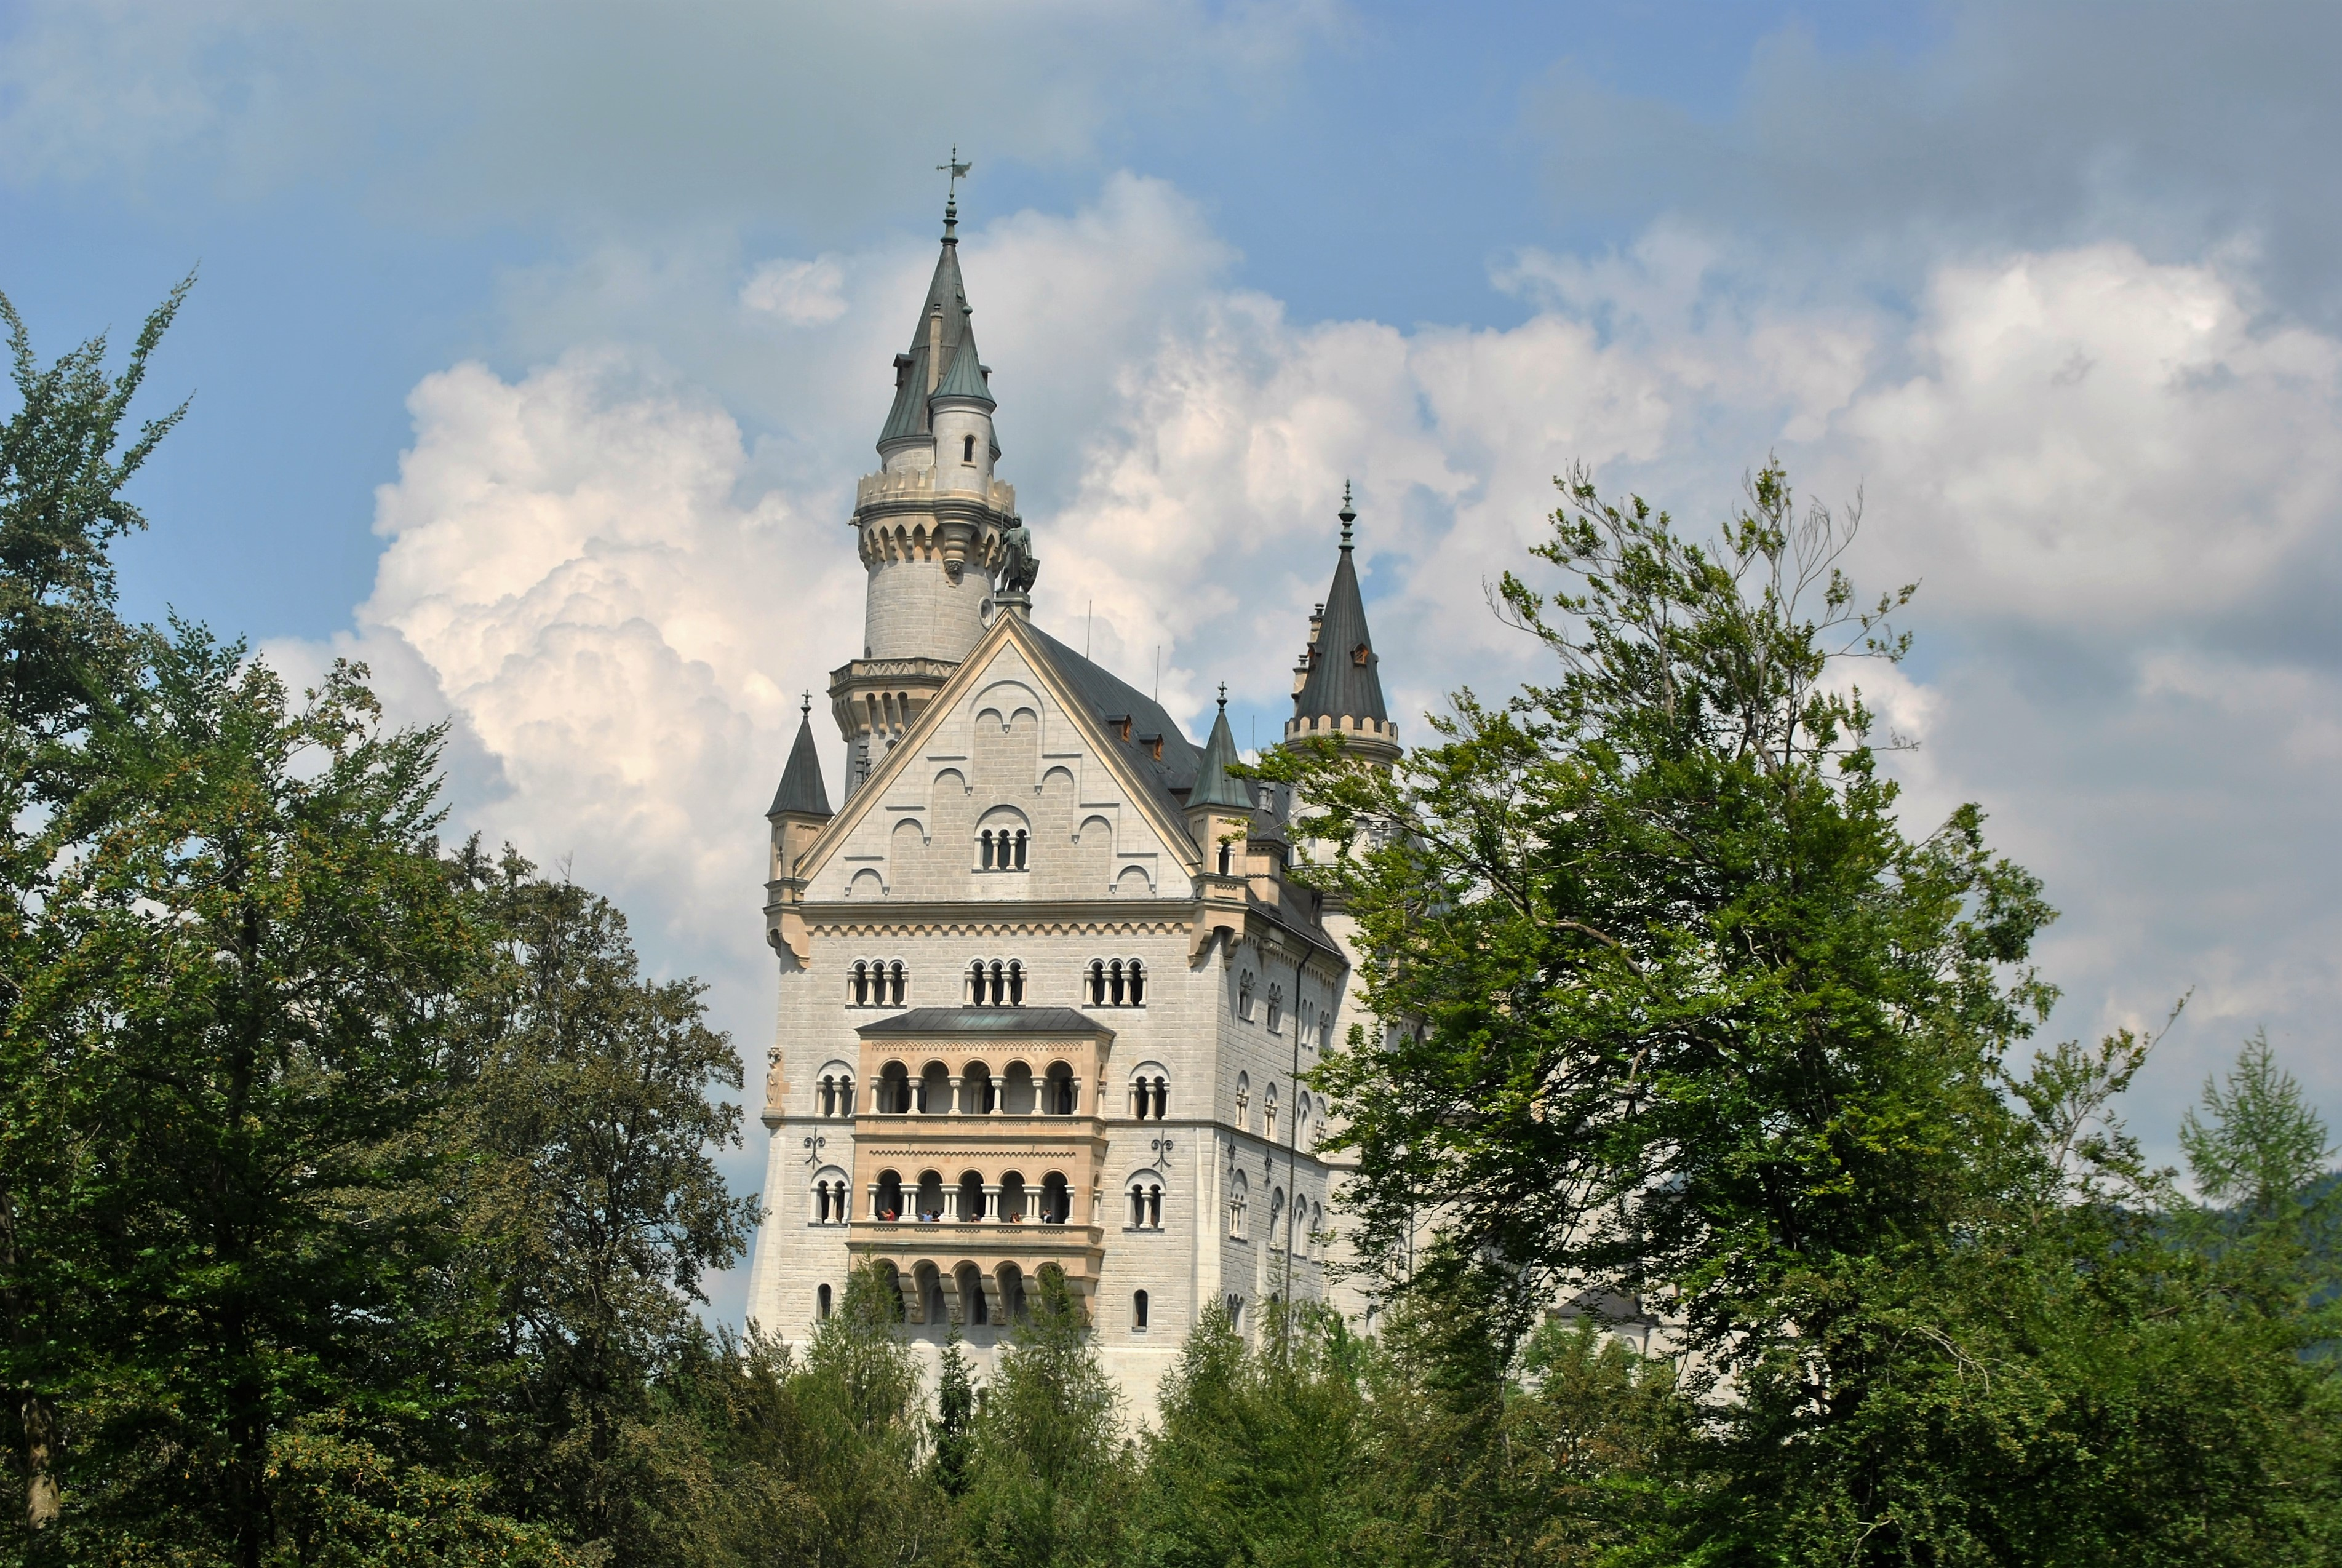 external image III_Neuschwanstein%20Castle,%20Germany%20(2).JPG